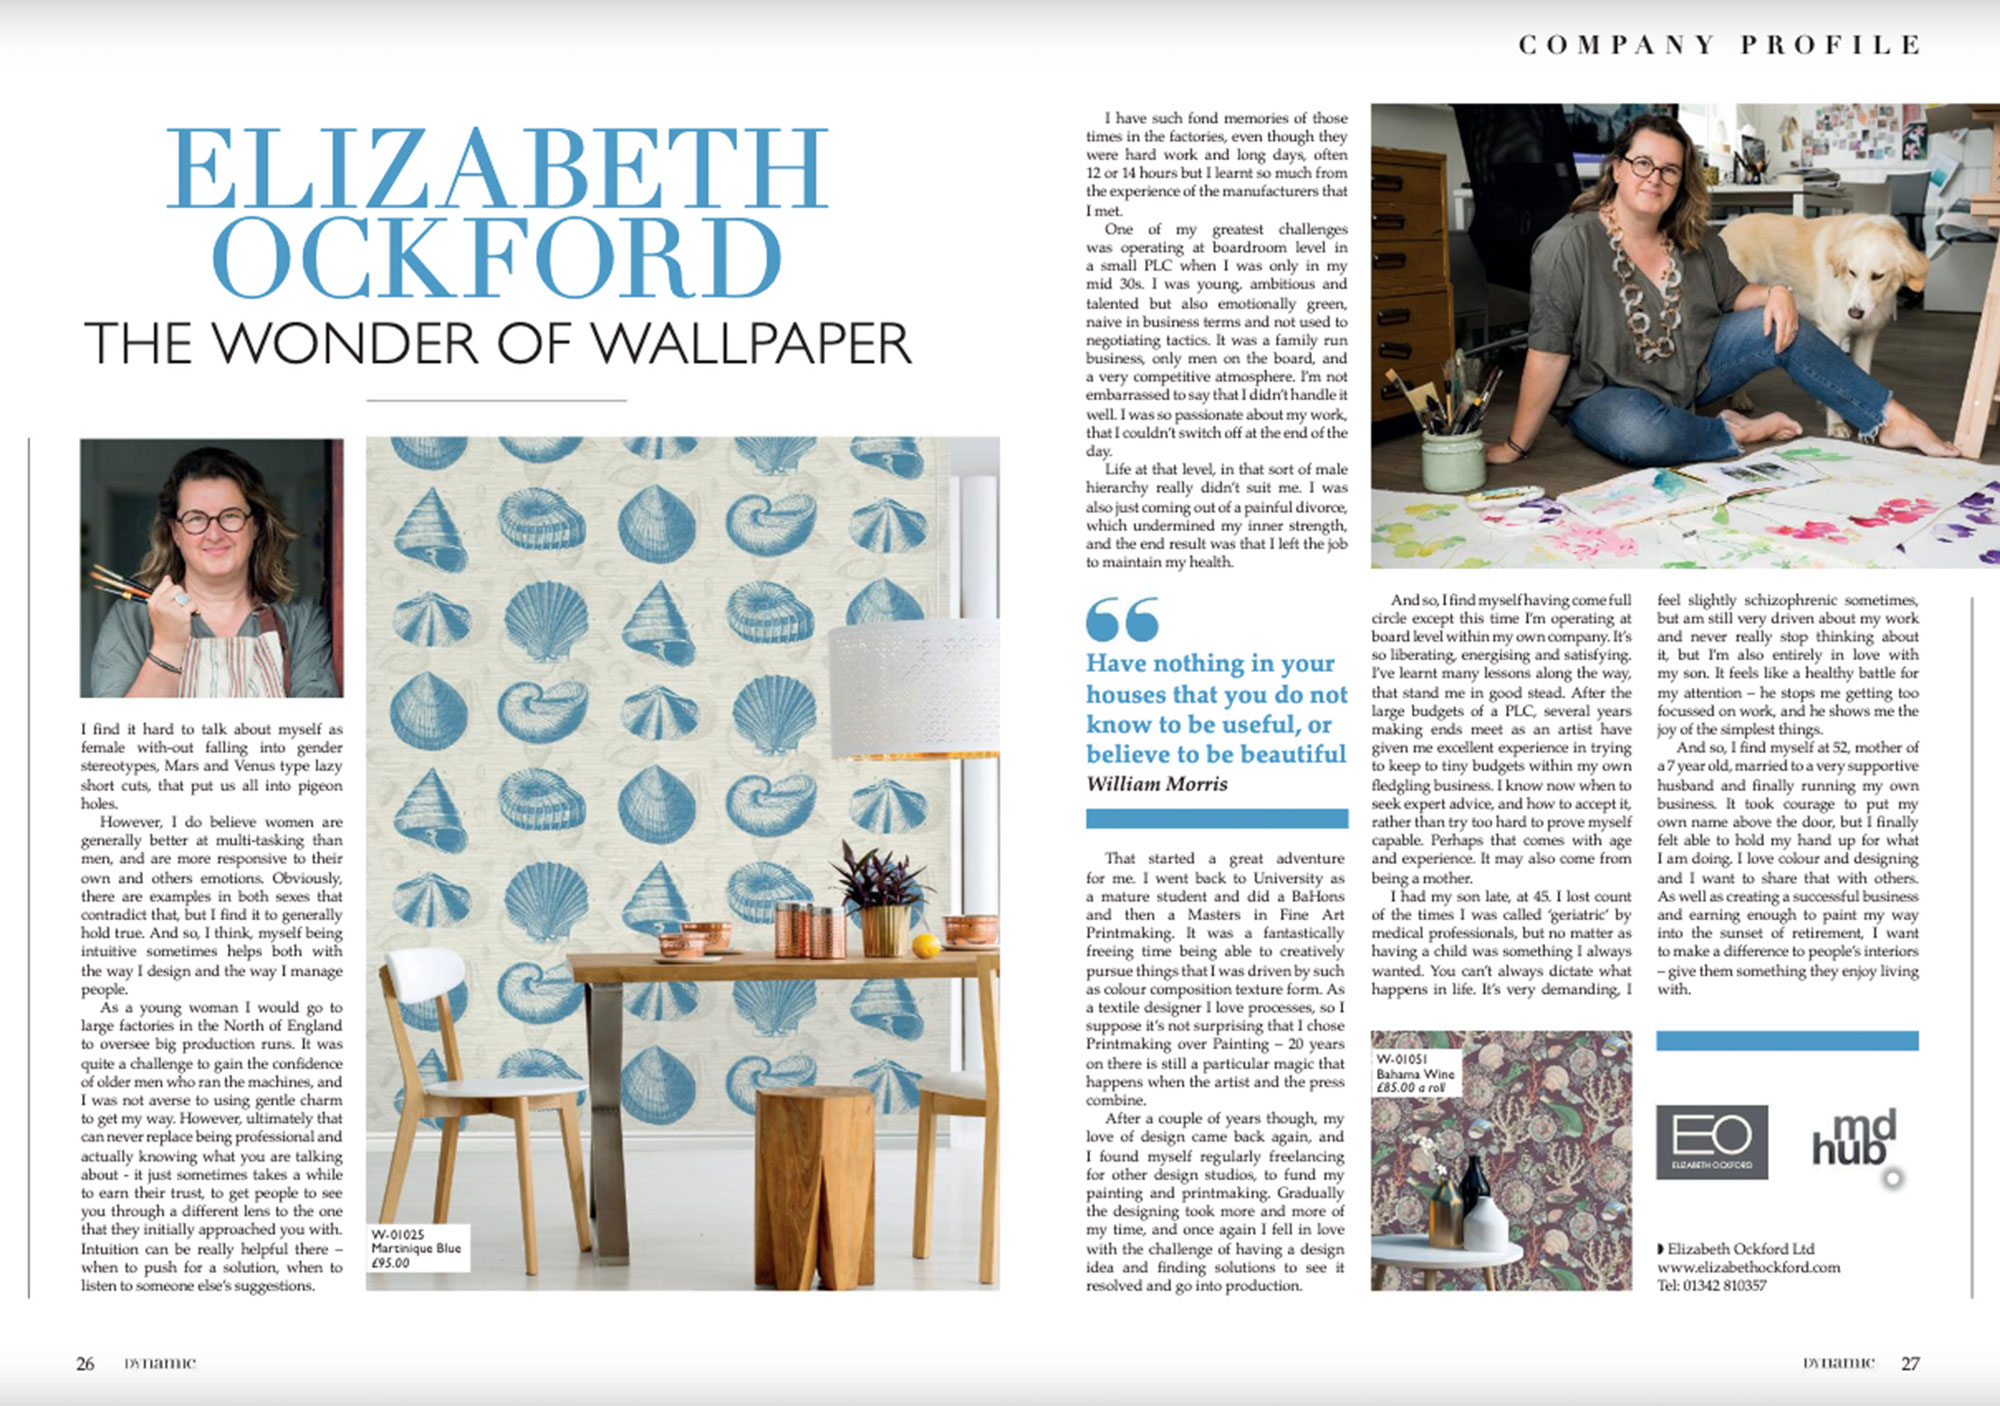 A press release from Dynamic Magazine on Elizabeth Ockford called the wonder of wallpaper with images of Elizabeth Ockford and her dog alongside her wallpaper designs.